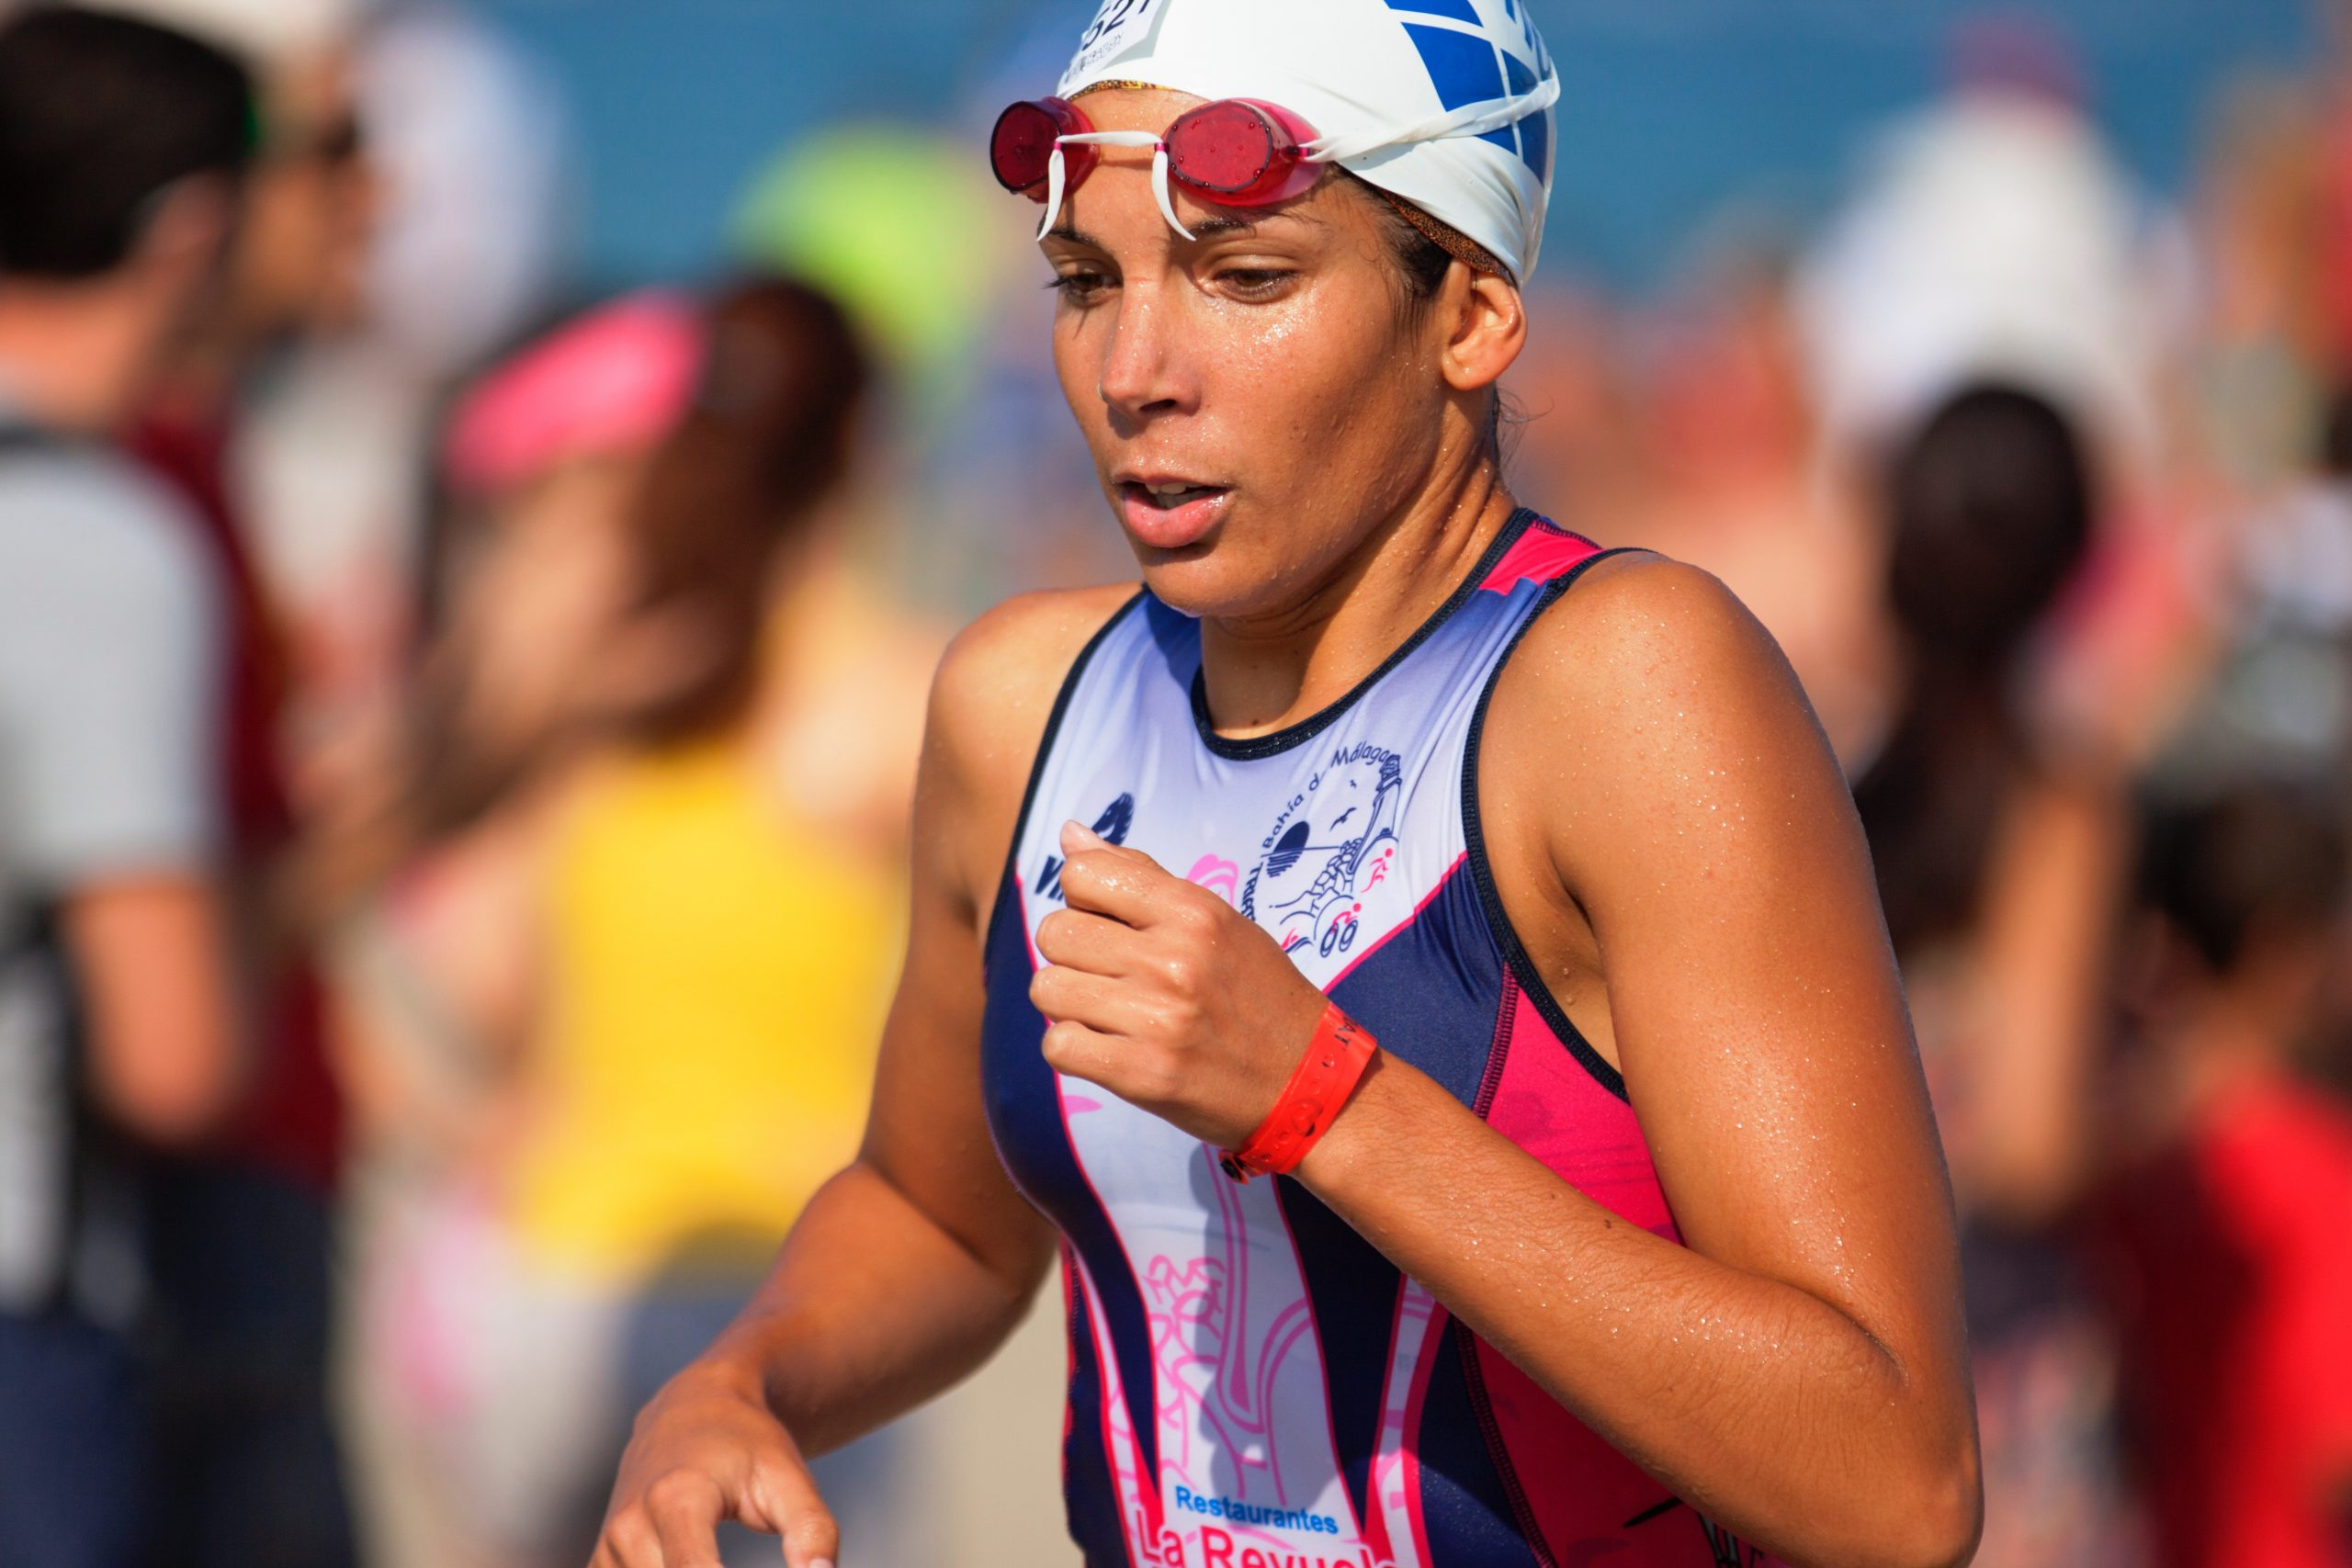 quino-al-490977-unsplash WOMEN RUN SWIM